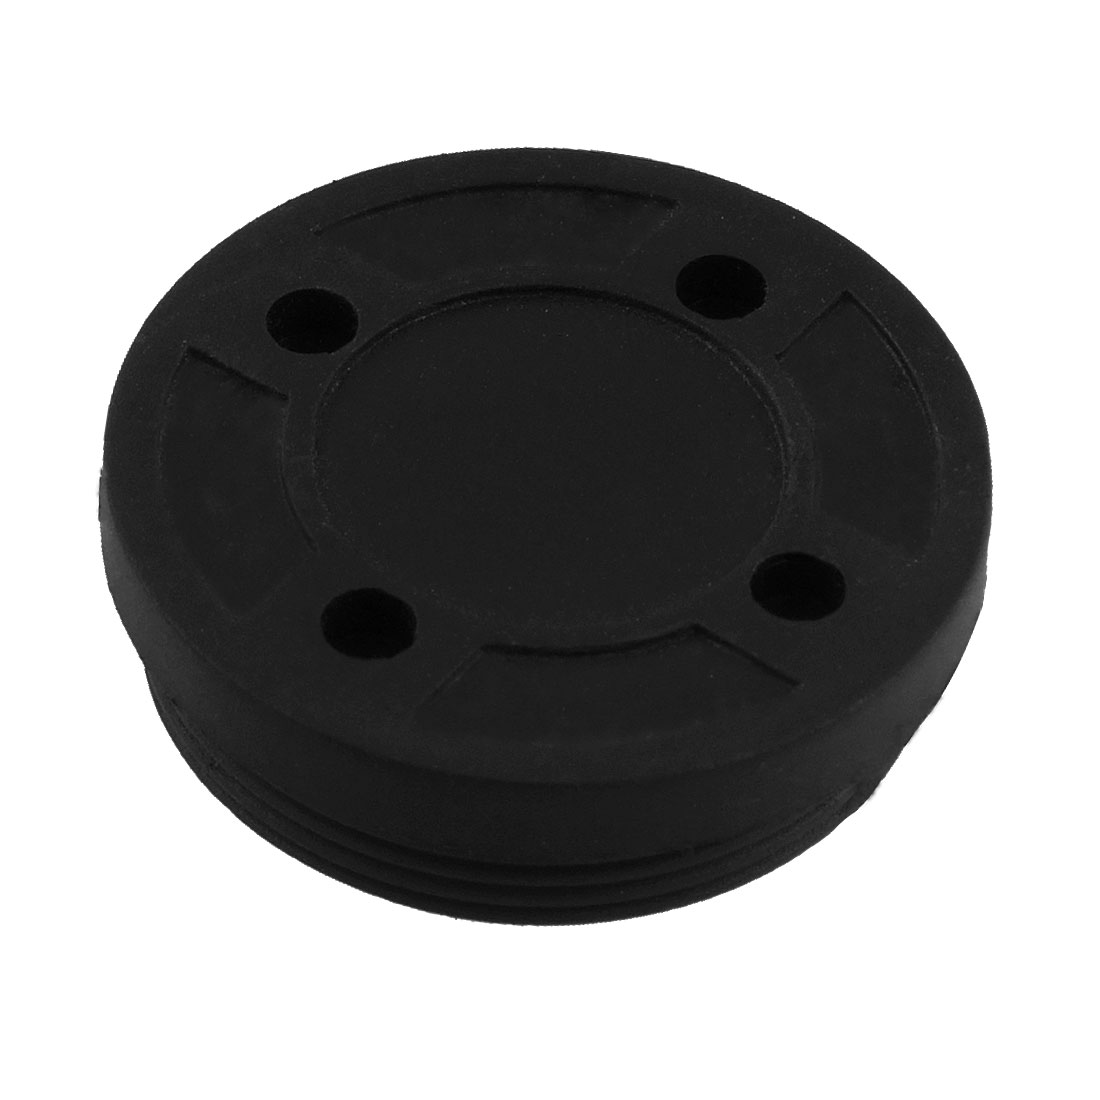 Threaded Plastic Oil Cap for Bosch GBH 2-26 Electric Hammer